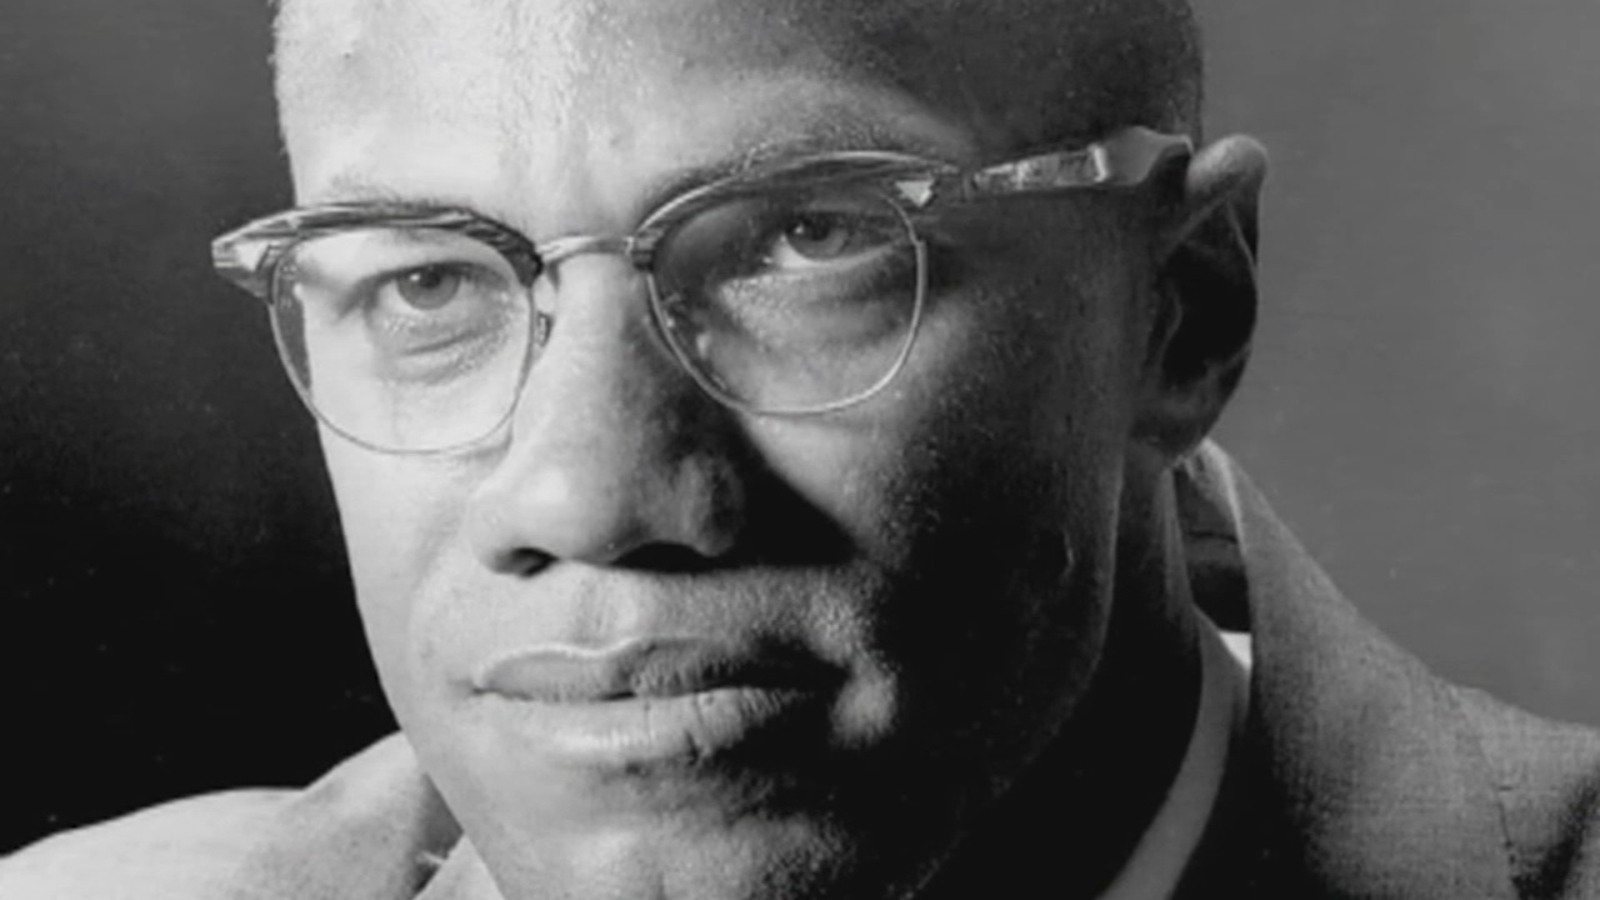 New evidence in Malcolm X assassination points to possible conspiracy